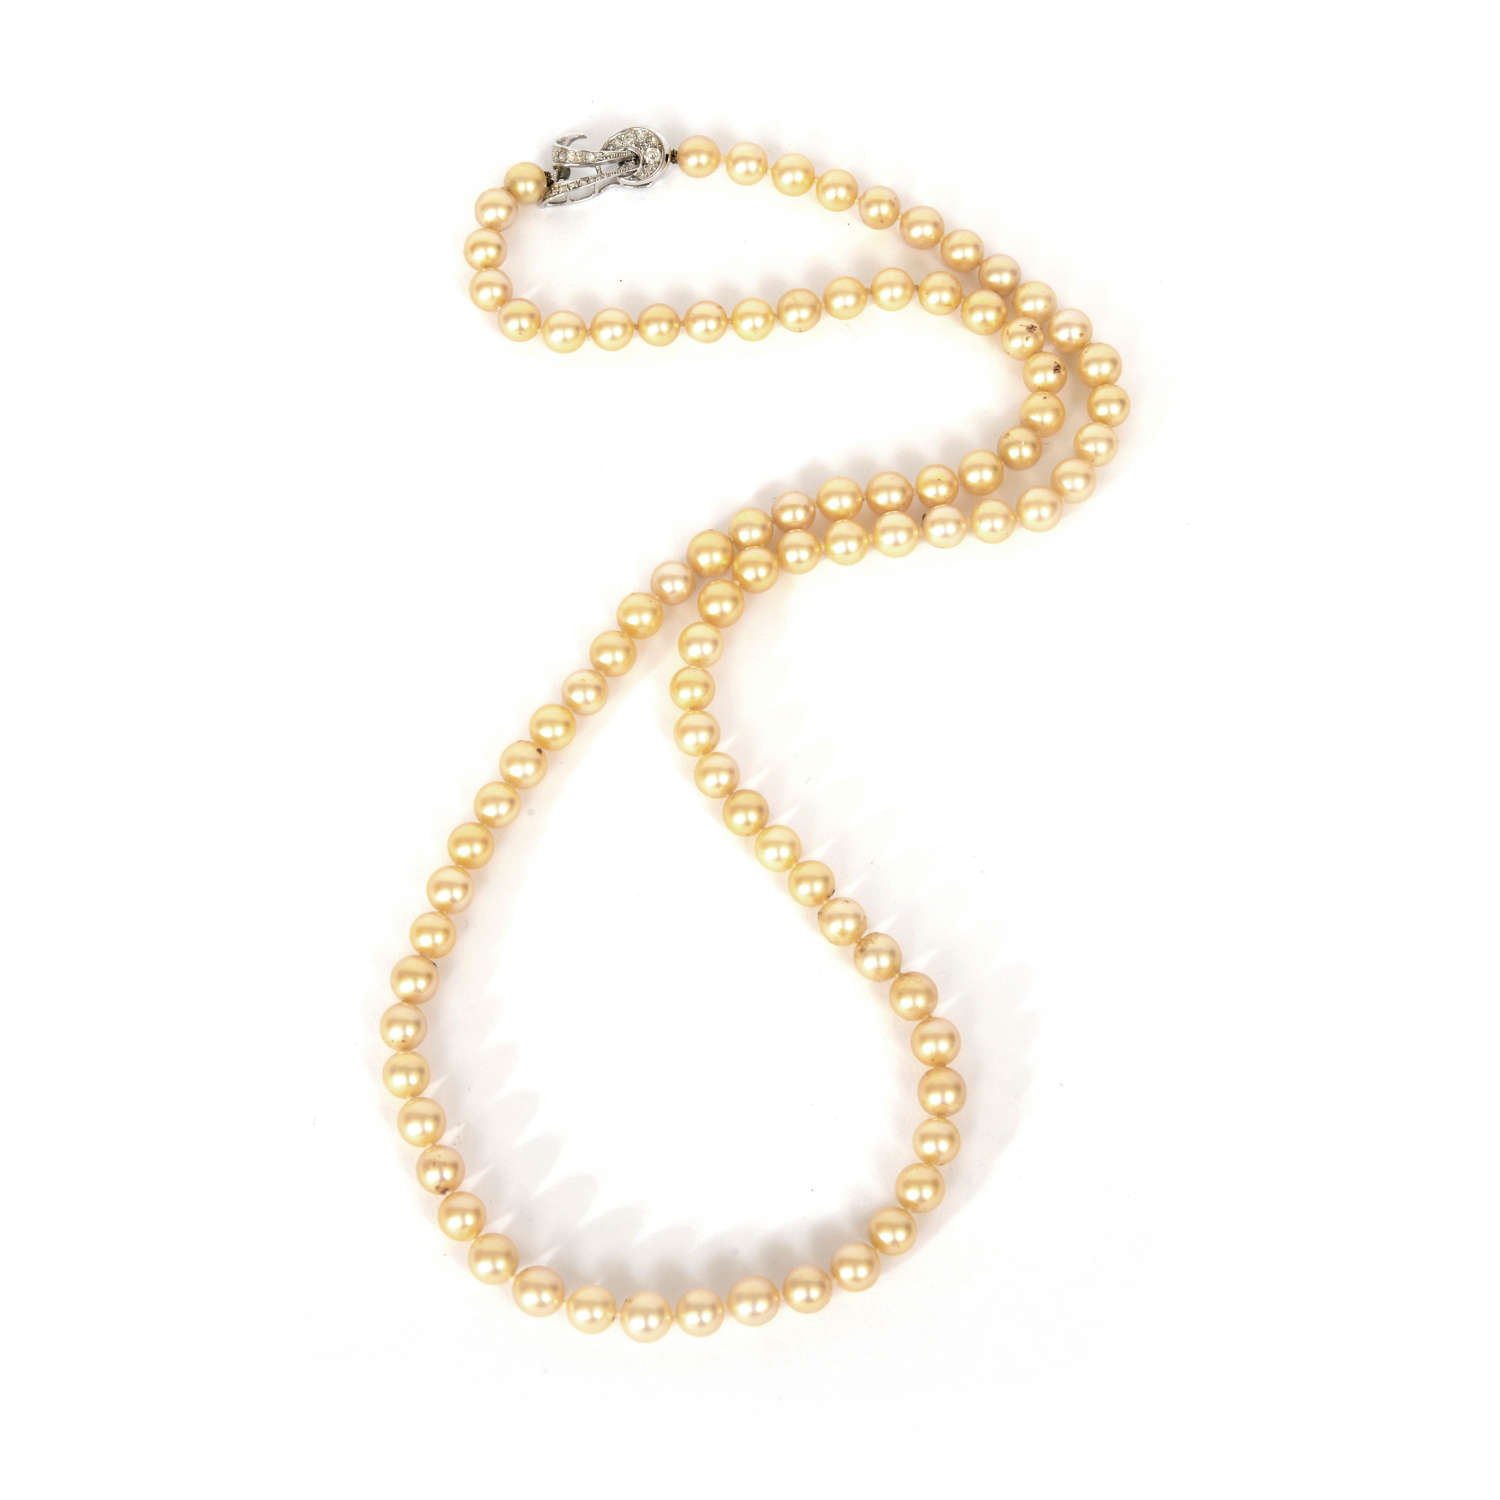 A cultured pearl necklace on diamond clasp.